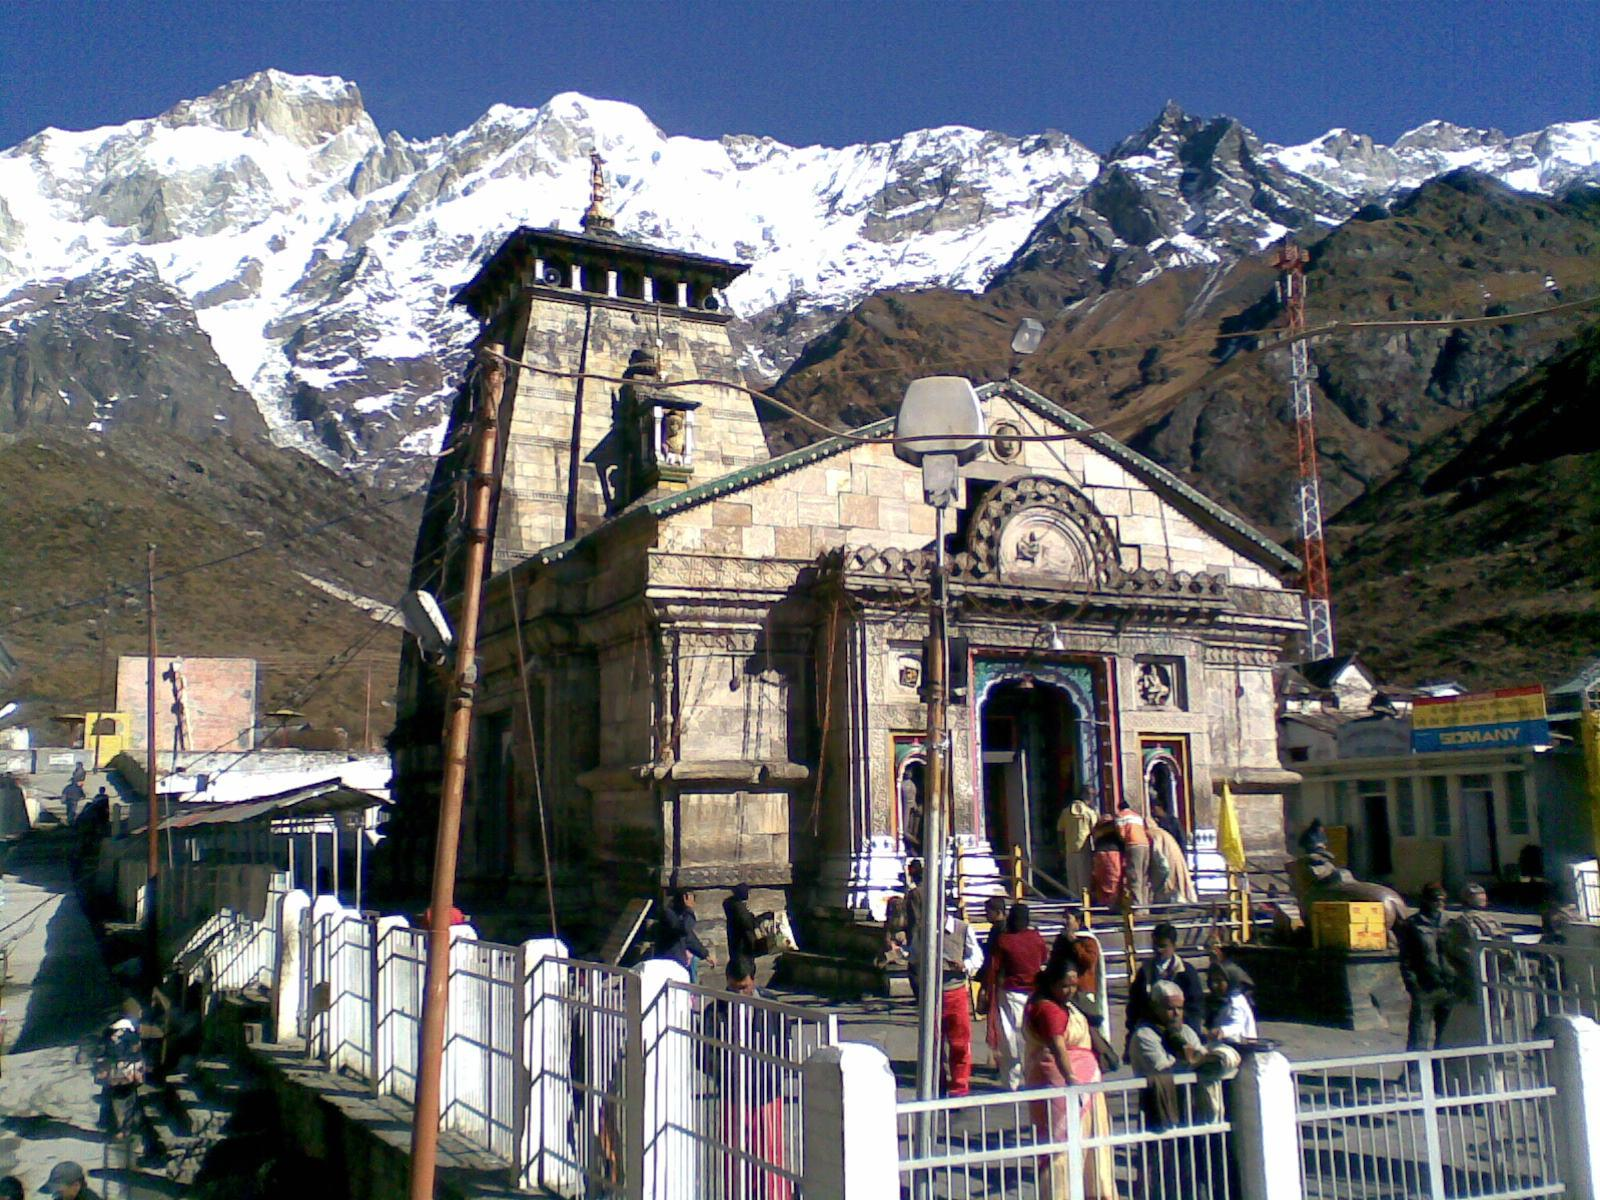 helicopter katra with Kedarnath Dham Picture Image on Jay Maa Saraswati furthermore Stock Photo Orange White Helicopter Overhead Image22853850 together with Watch in addition Amarnath Yatra With Kashmir Tour furthermore Kedarnath Dham Picture Image.